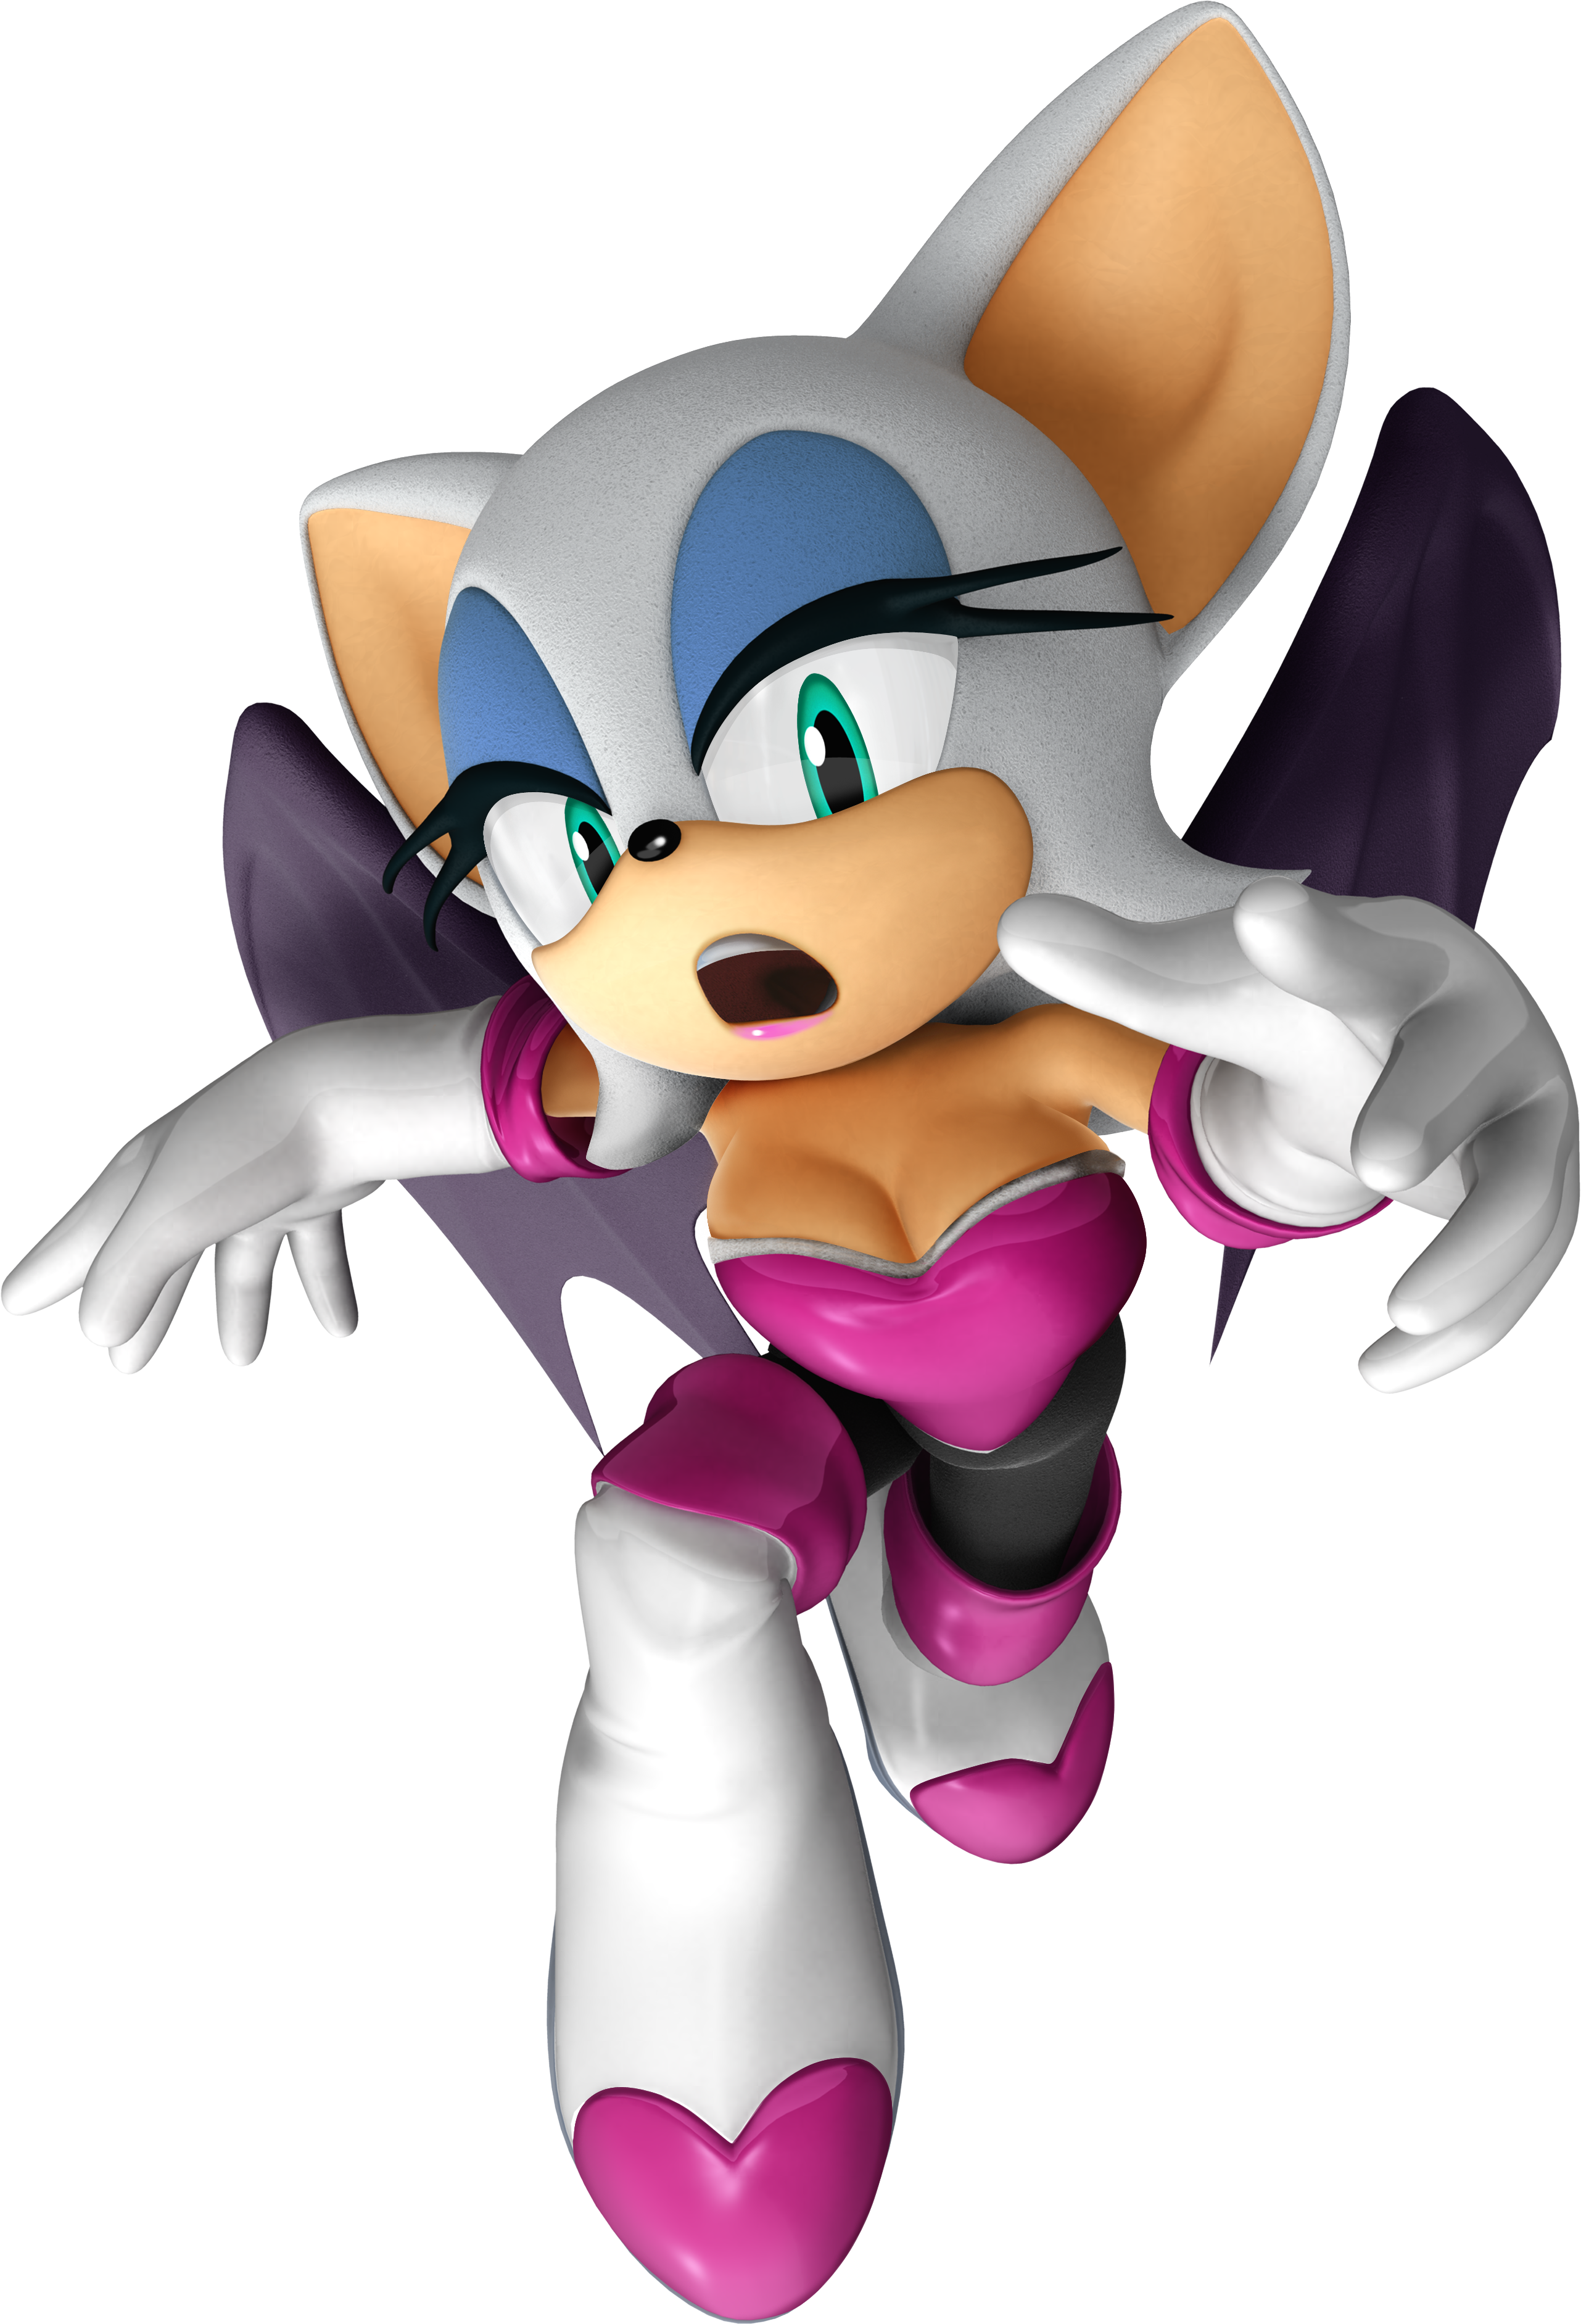 Naked rogue sonic pron picture